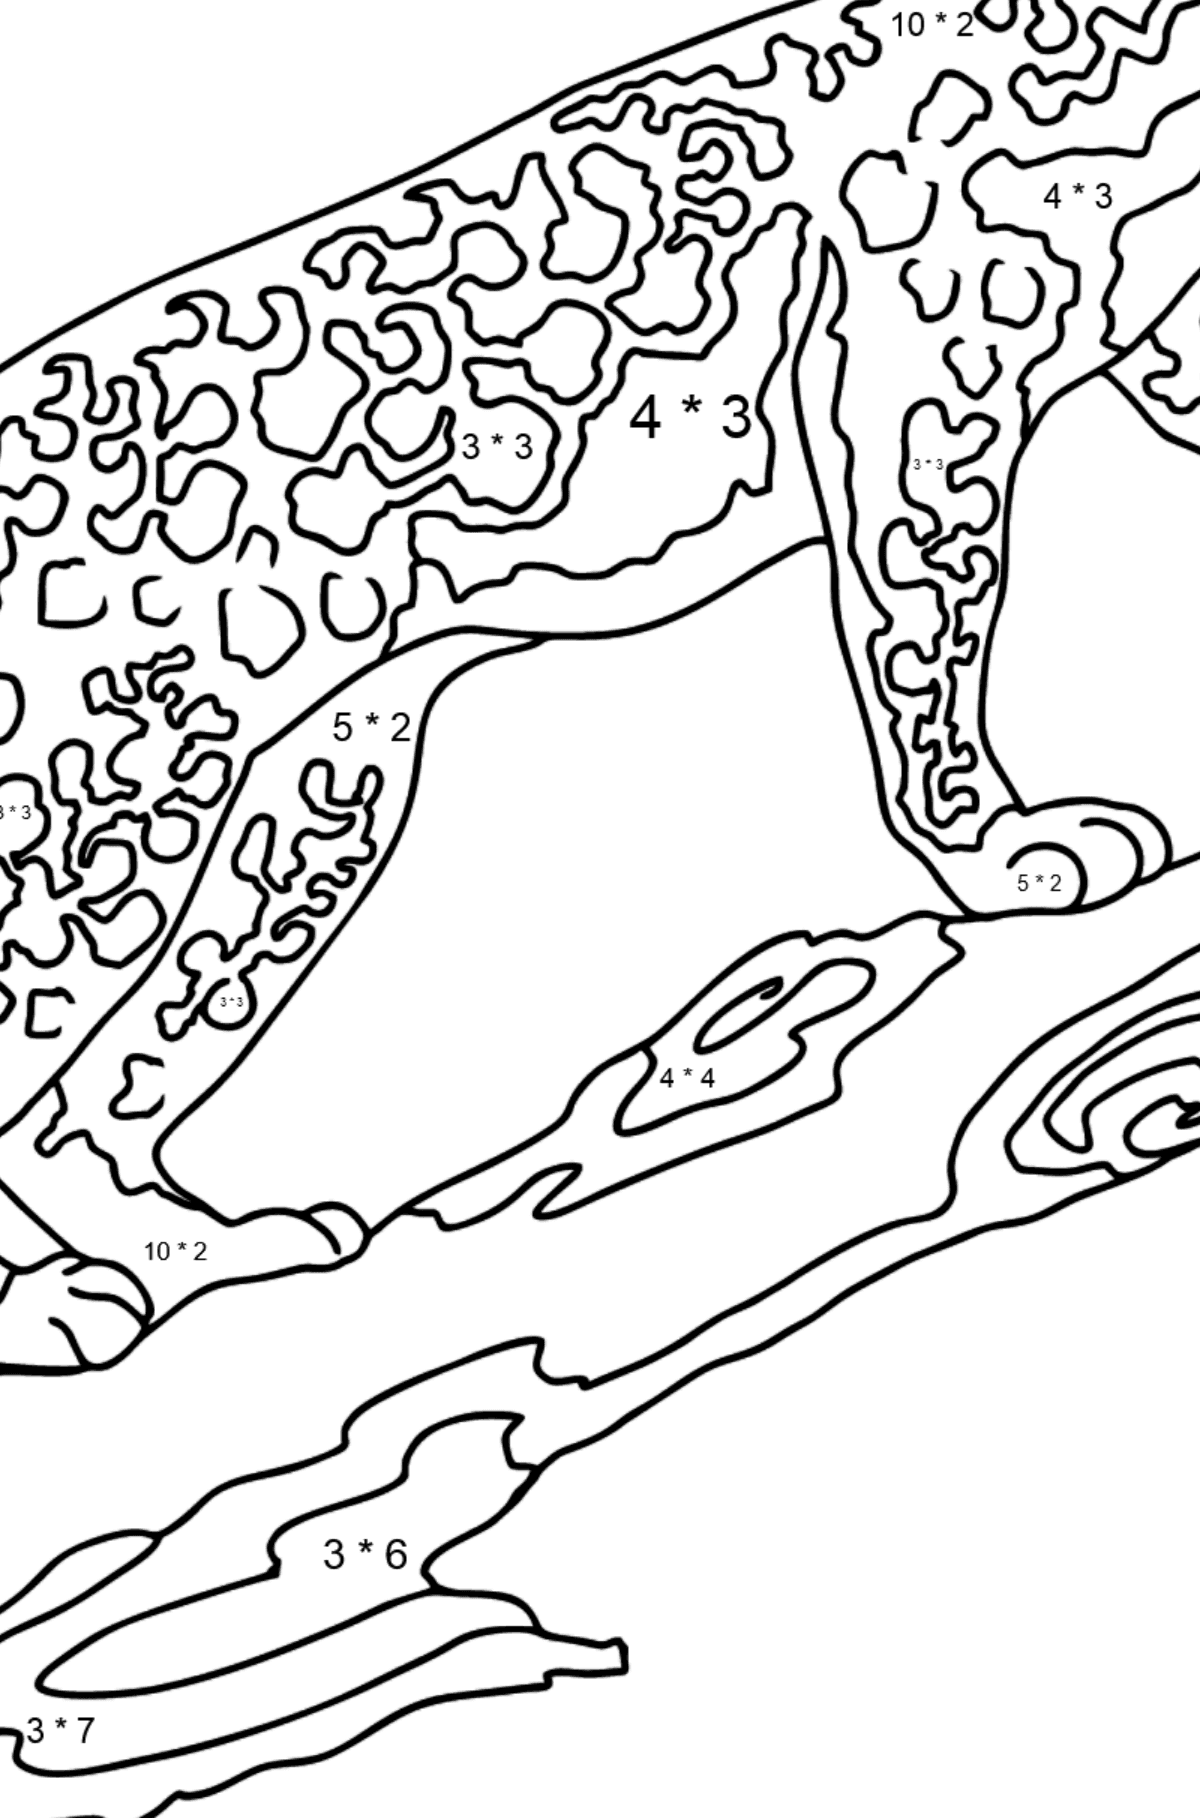 Coloring Page - A Leopard on a Branch - Math Coloring - Multiplication for Kids